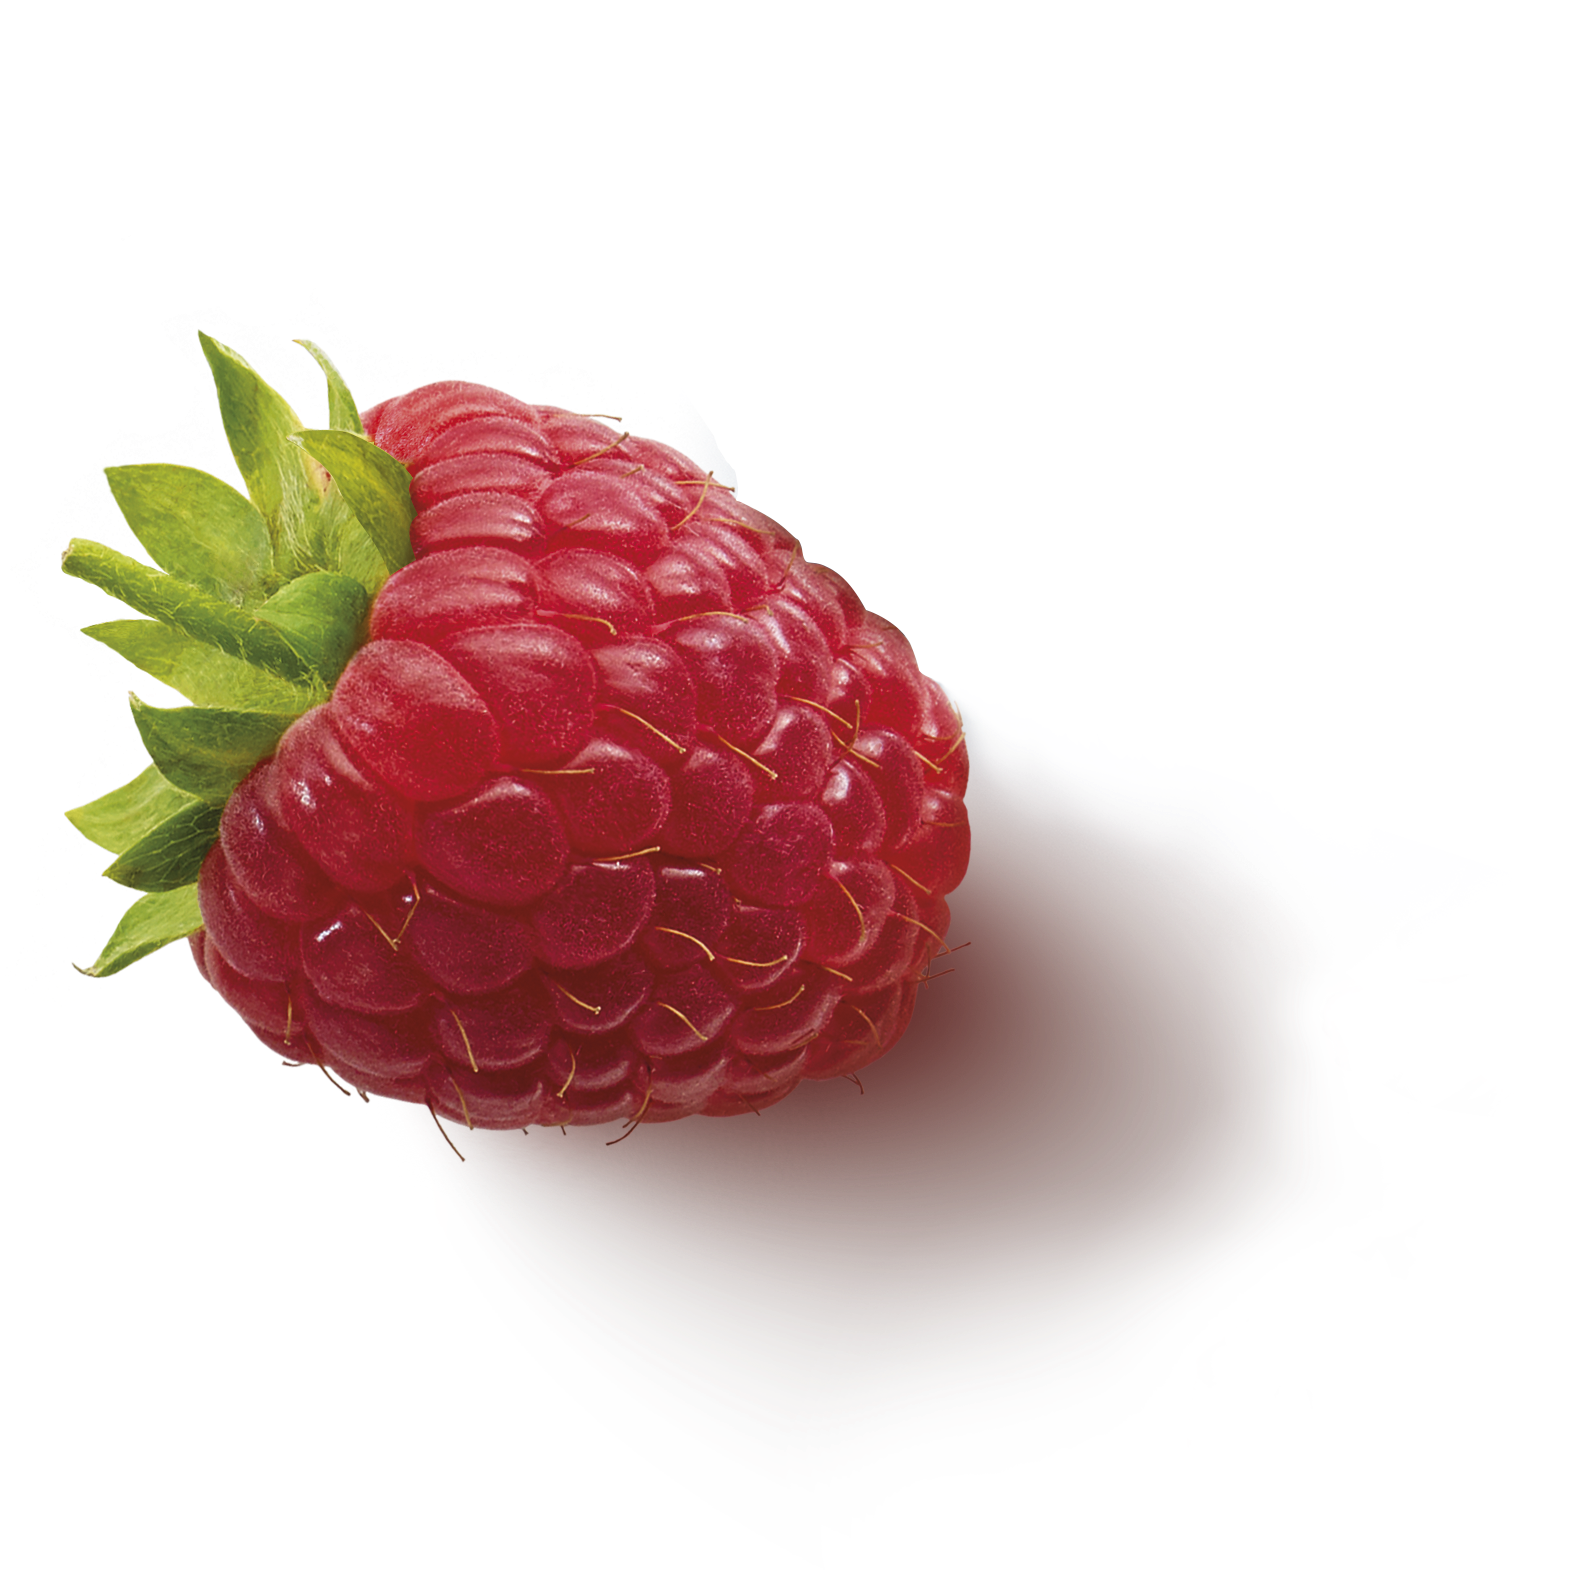 fruitinfusion-forestfruit-ingredient2-raspberry.png